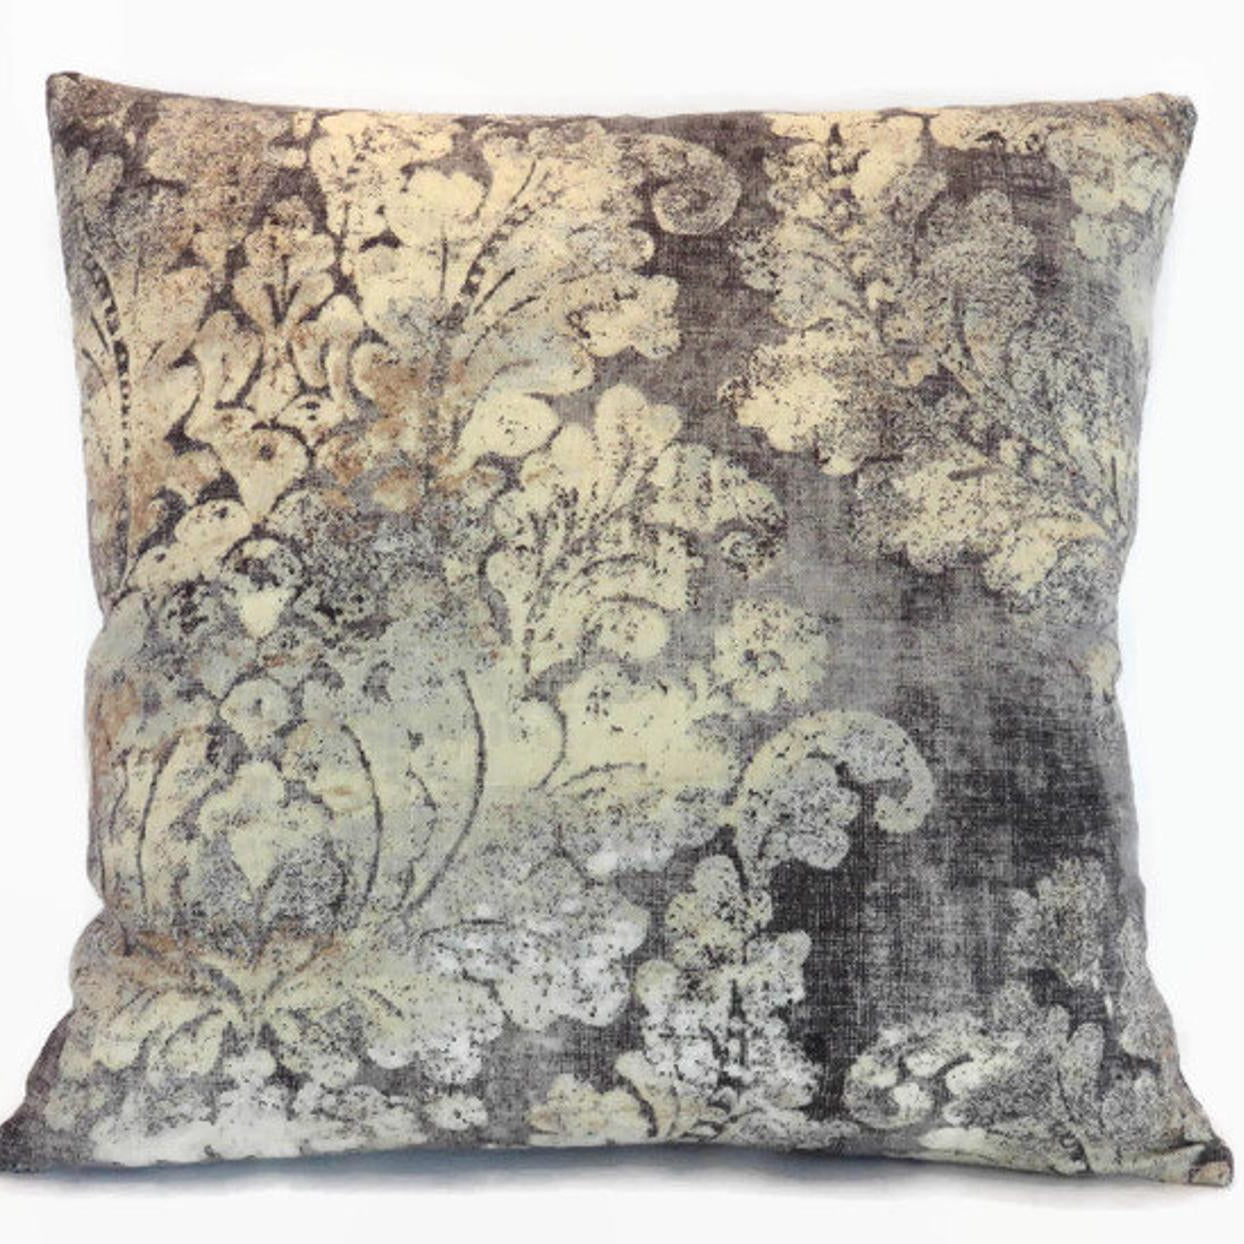 Grey Damask Medallion Pillow Cover, Linen Blend, Covington Firenza